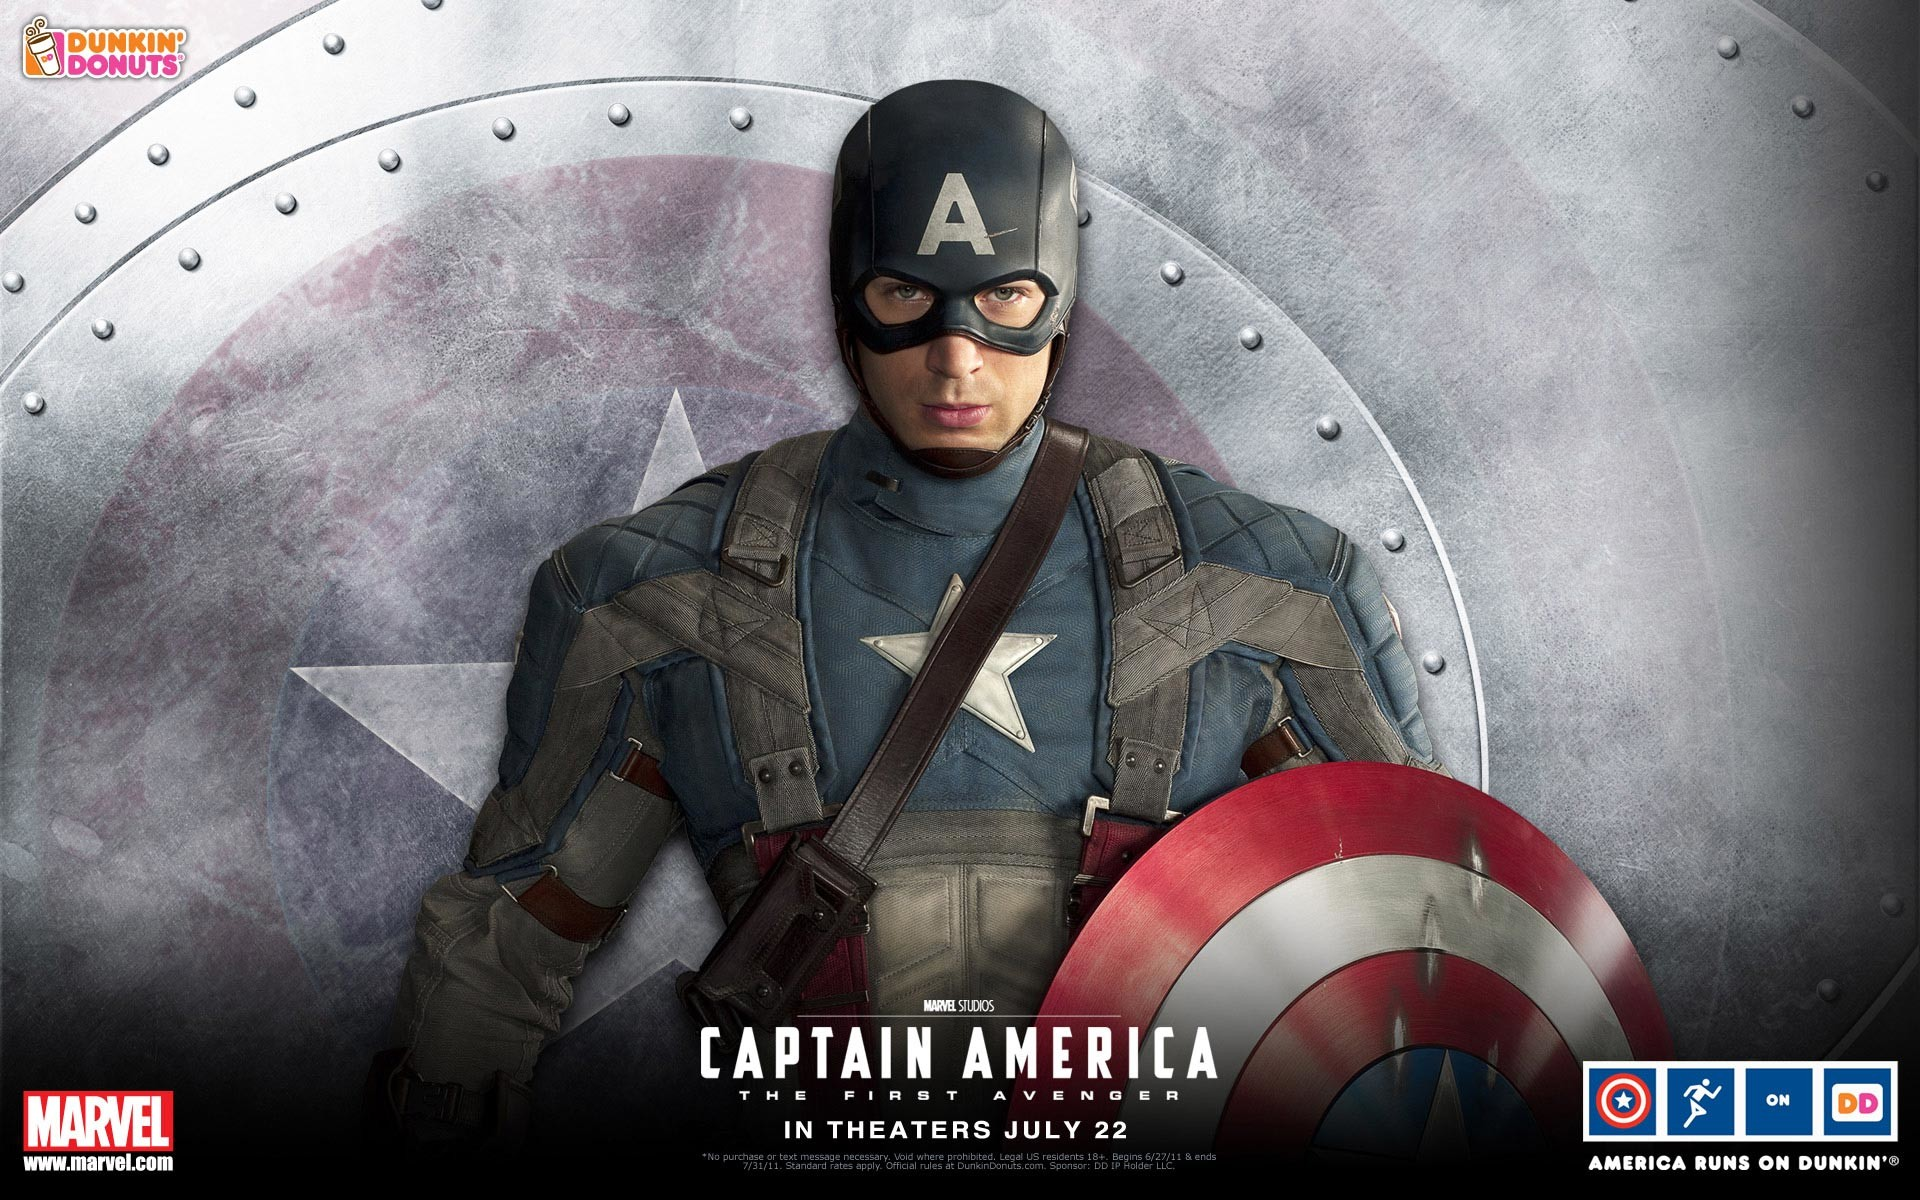 1920x1200 Captain America The First Avenger Wallpaper Apps